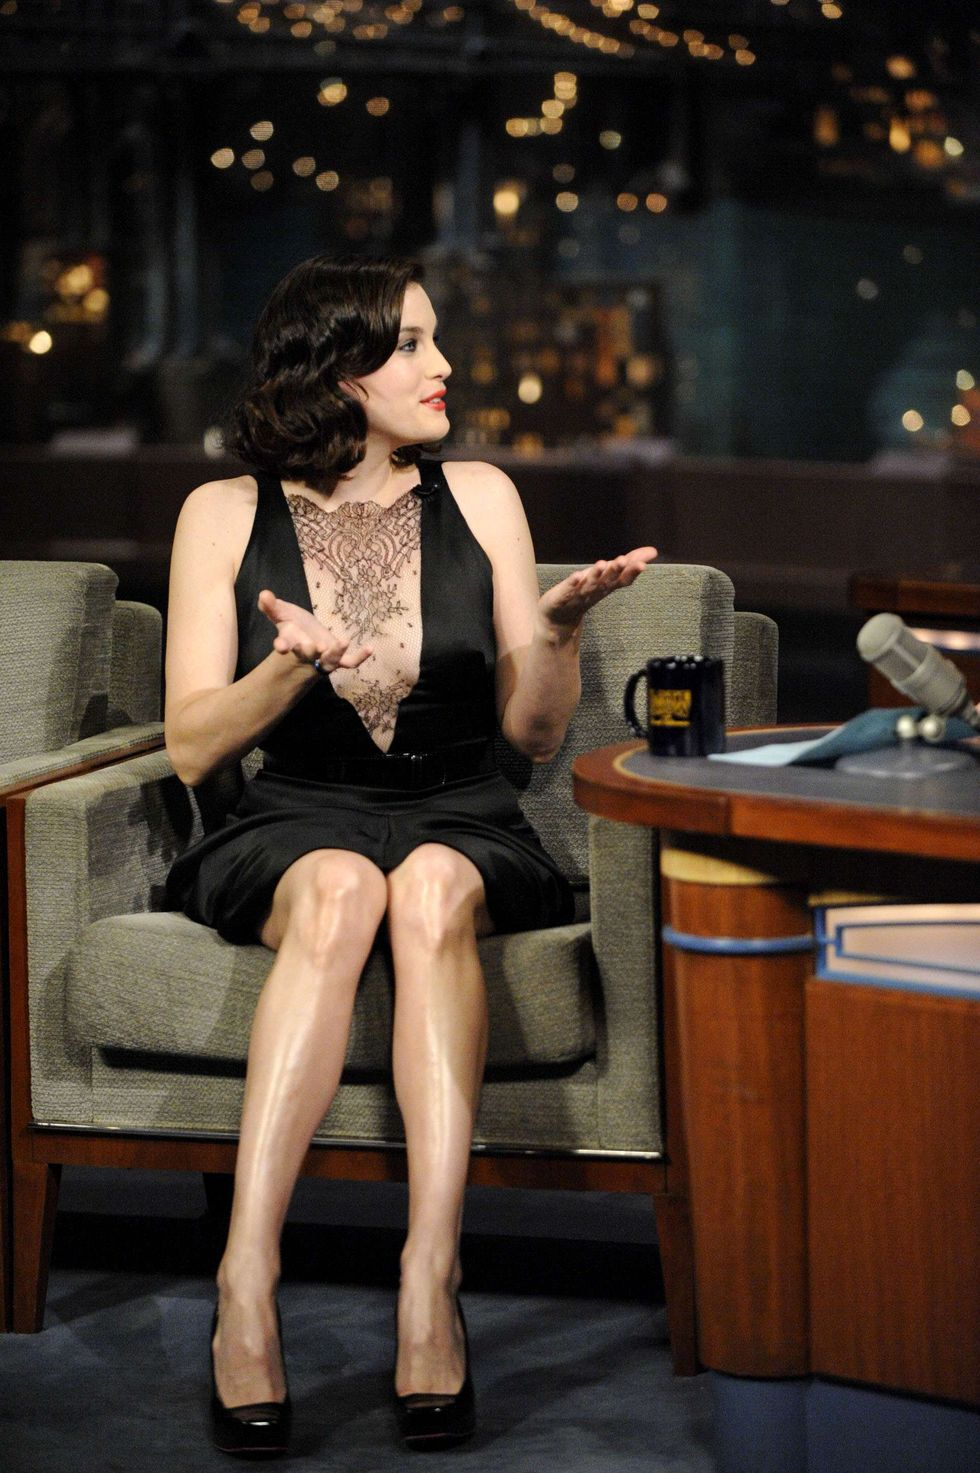 liv-tyler-at-the-late-show-with-david-letterman-in-new-york-01